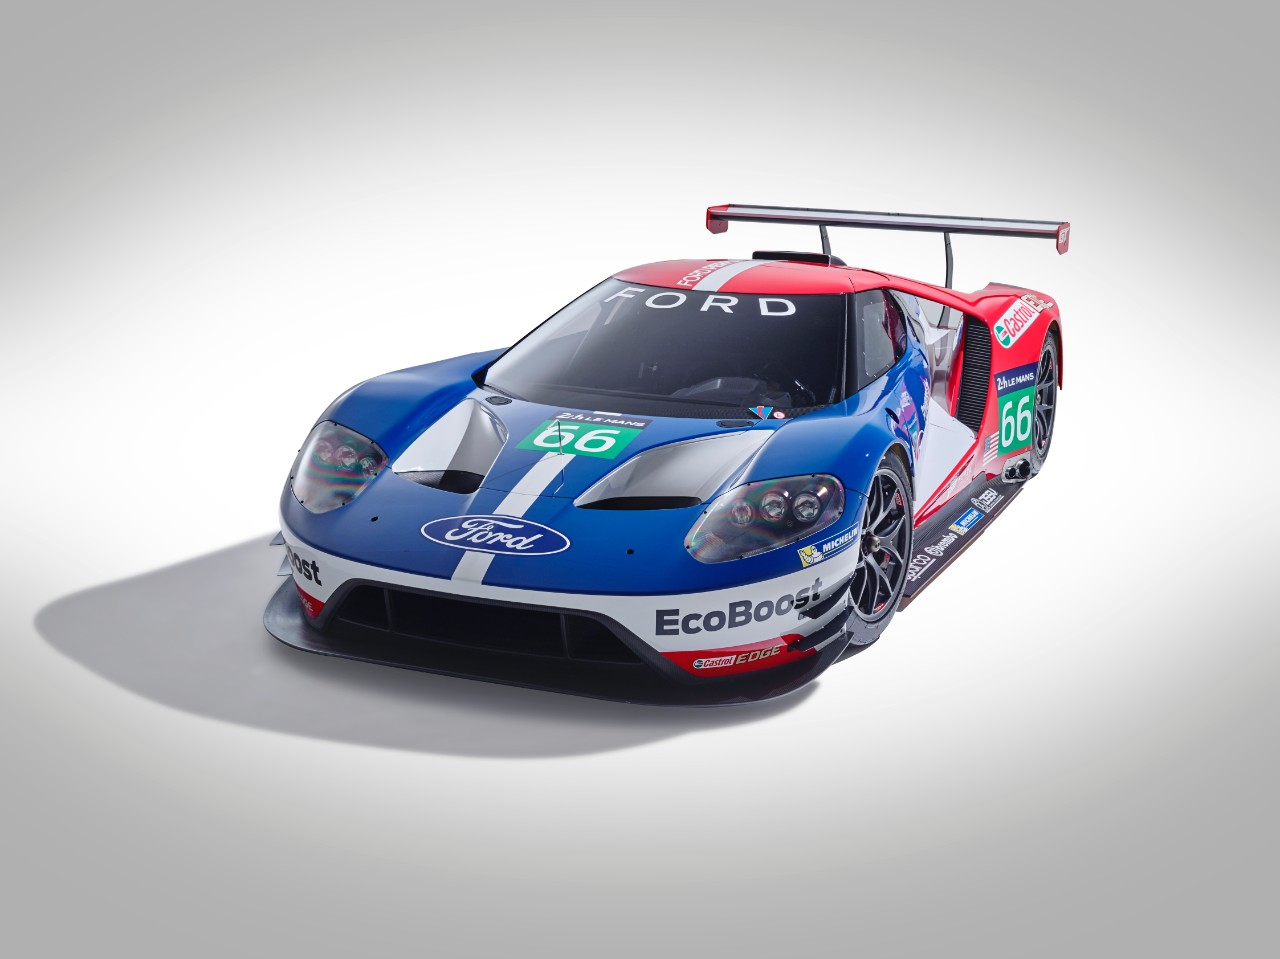 ford gt le mans racecar confirmed to debut at 2016 daytona 24 hours autoevolution. Black Bedroom Furniture Sets. Home Design Ideas